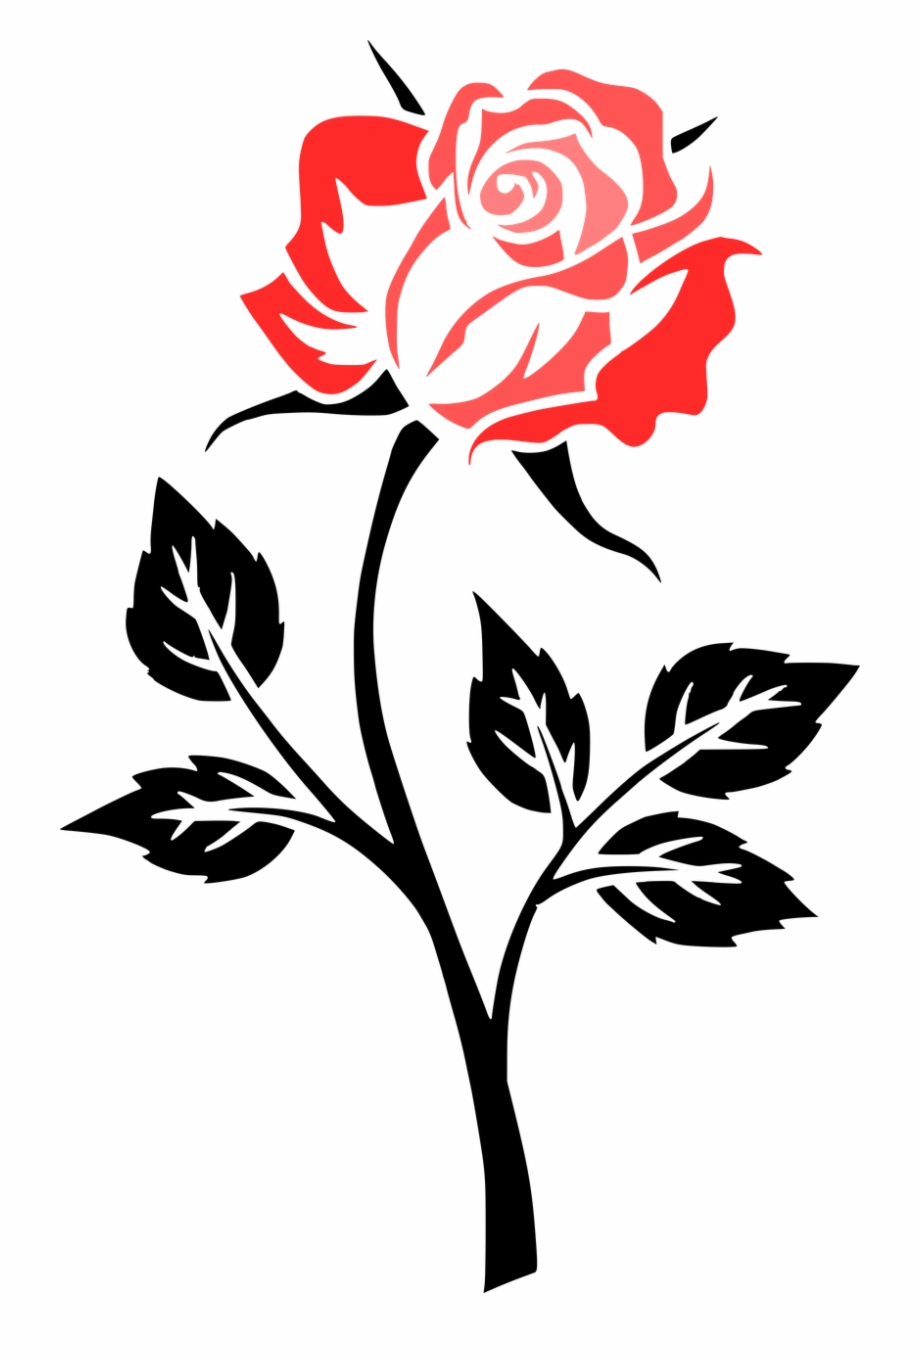 Flower Rose Contour Outlines Png Image.